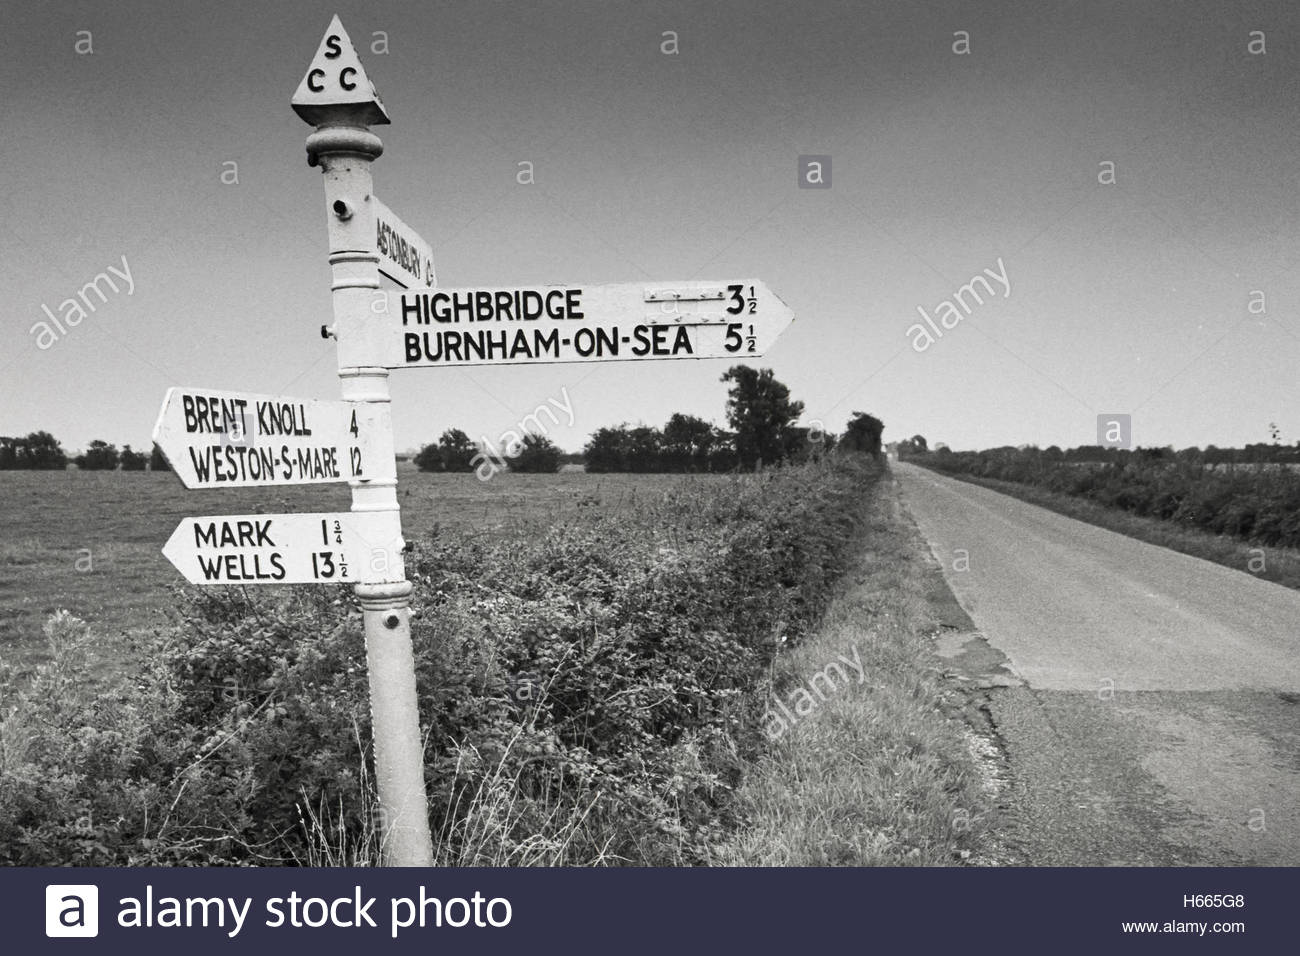 Somerset Levels in the 1990s; cast iron fingerpost road sign with finial at Mark Moor, Somerset Levels, UK - 1994 - Stock Image